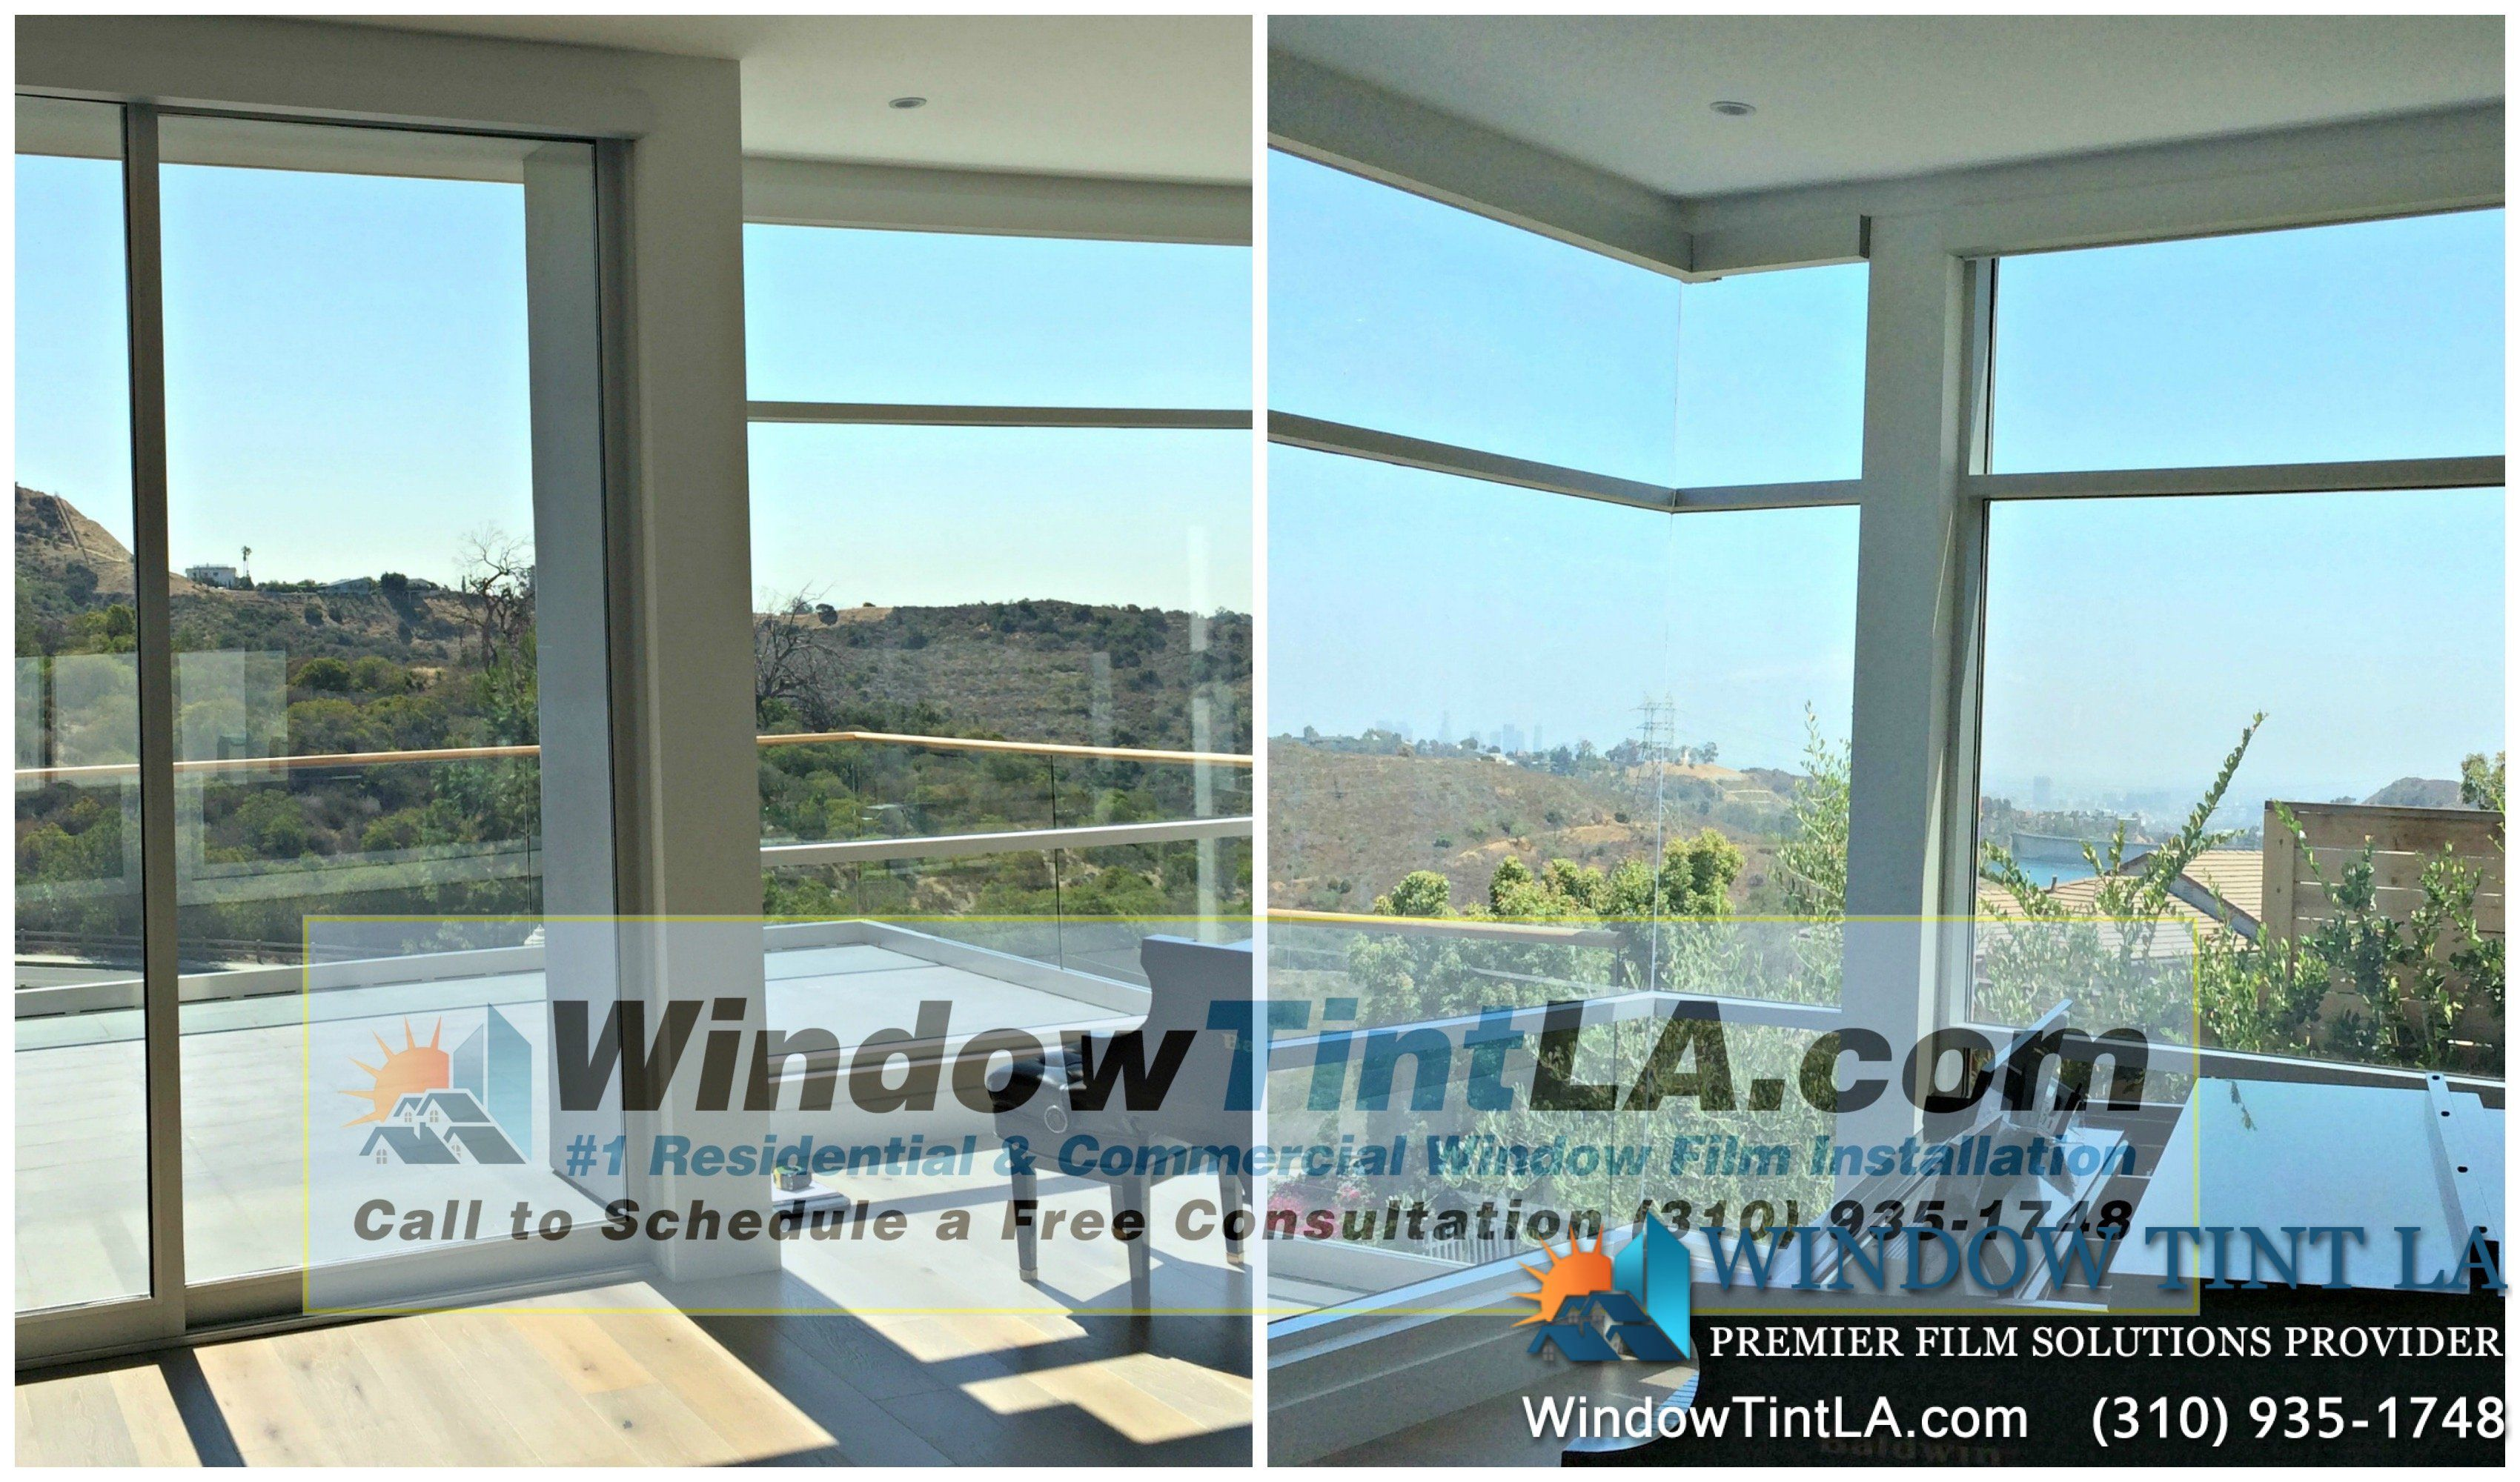 Before And After Window Tint Was Applied Windows Tinted House Windows Tinted Windows